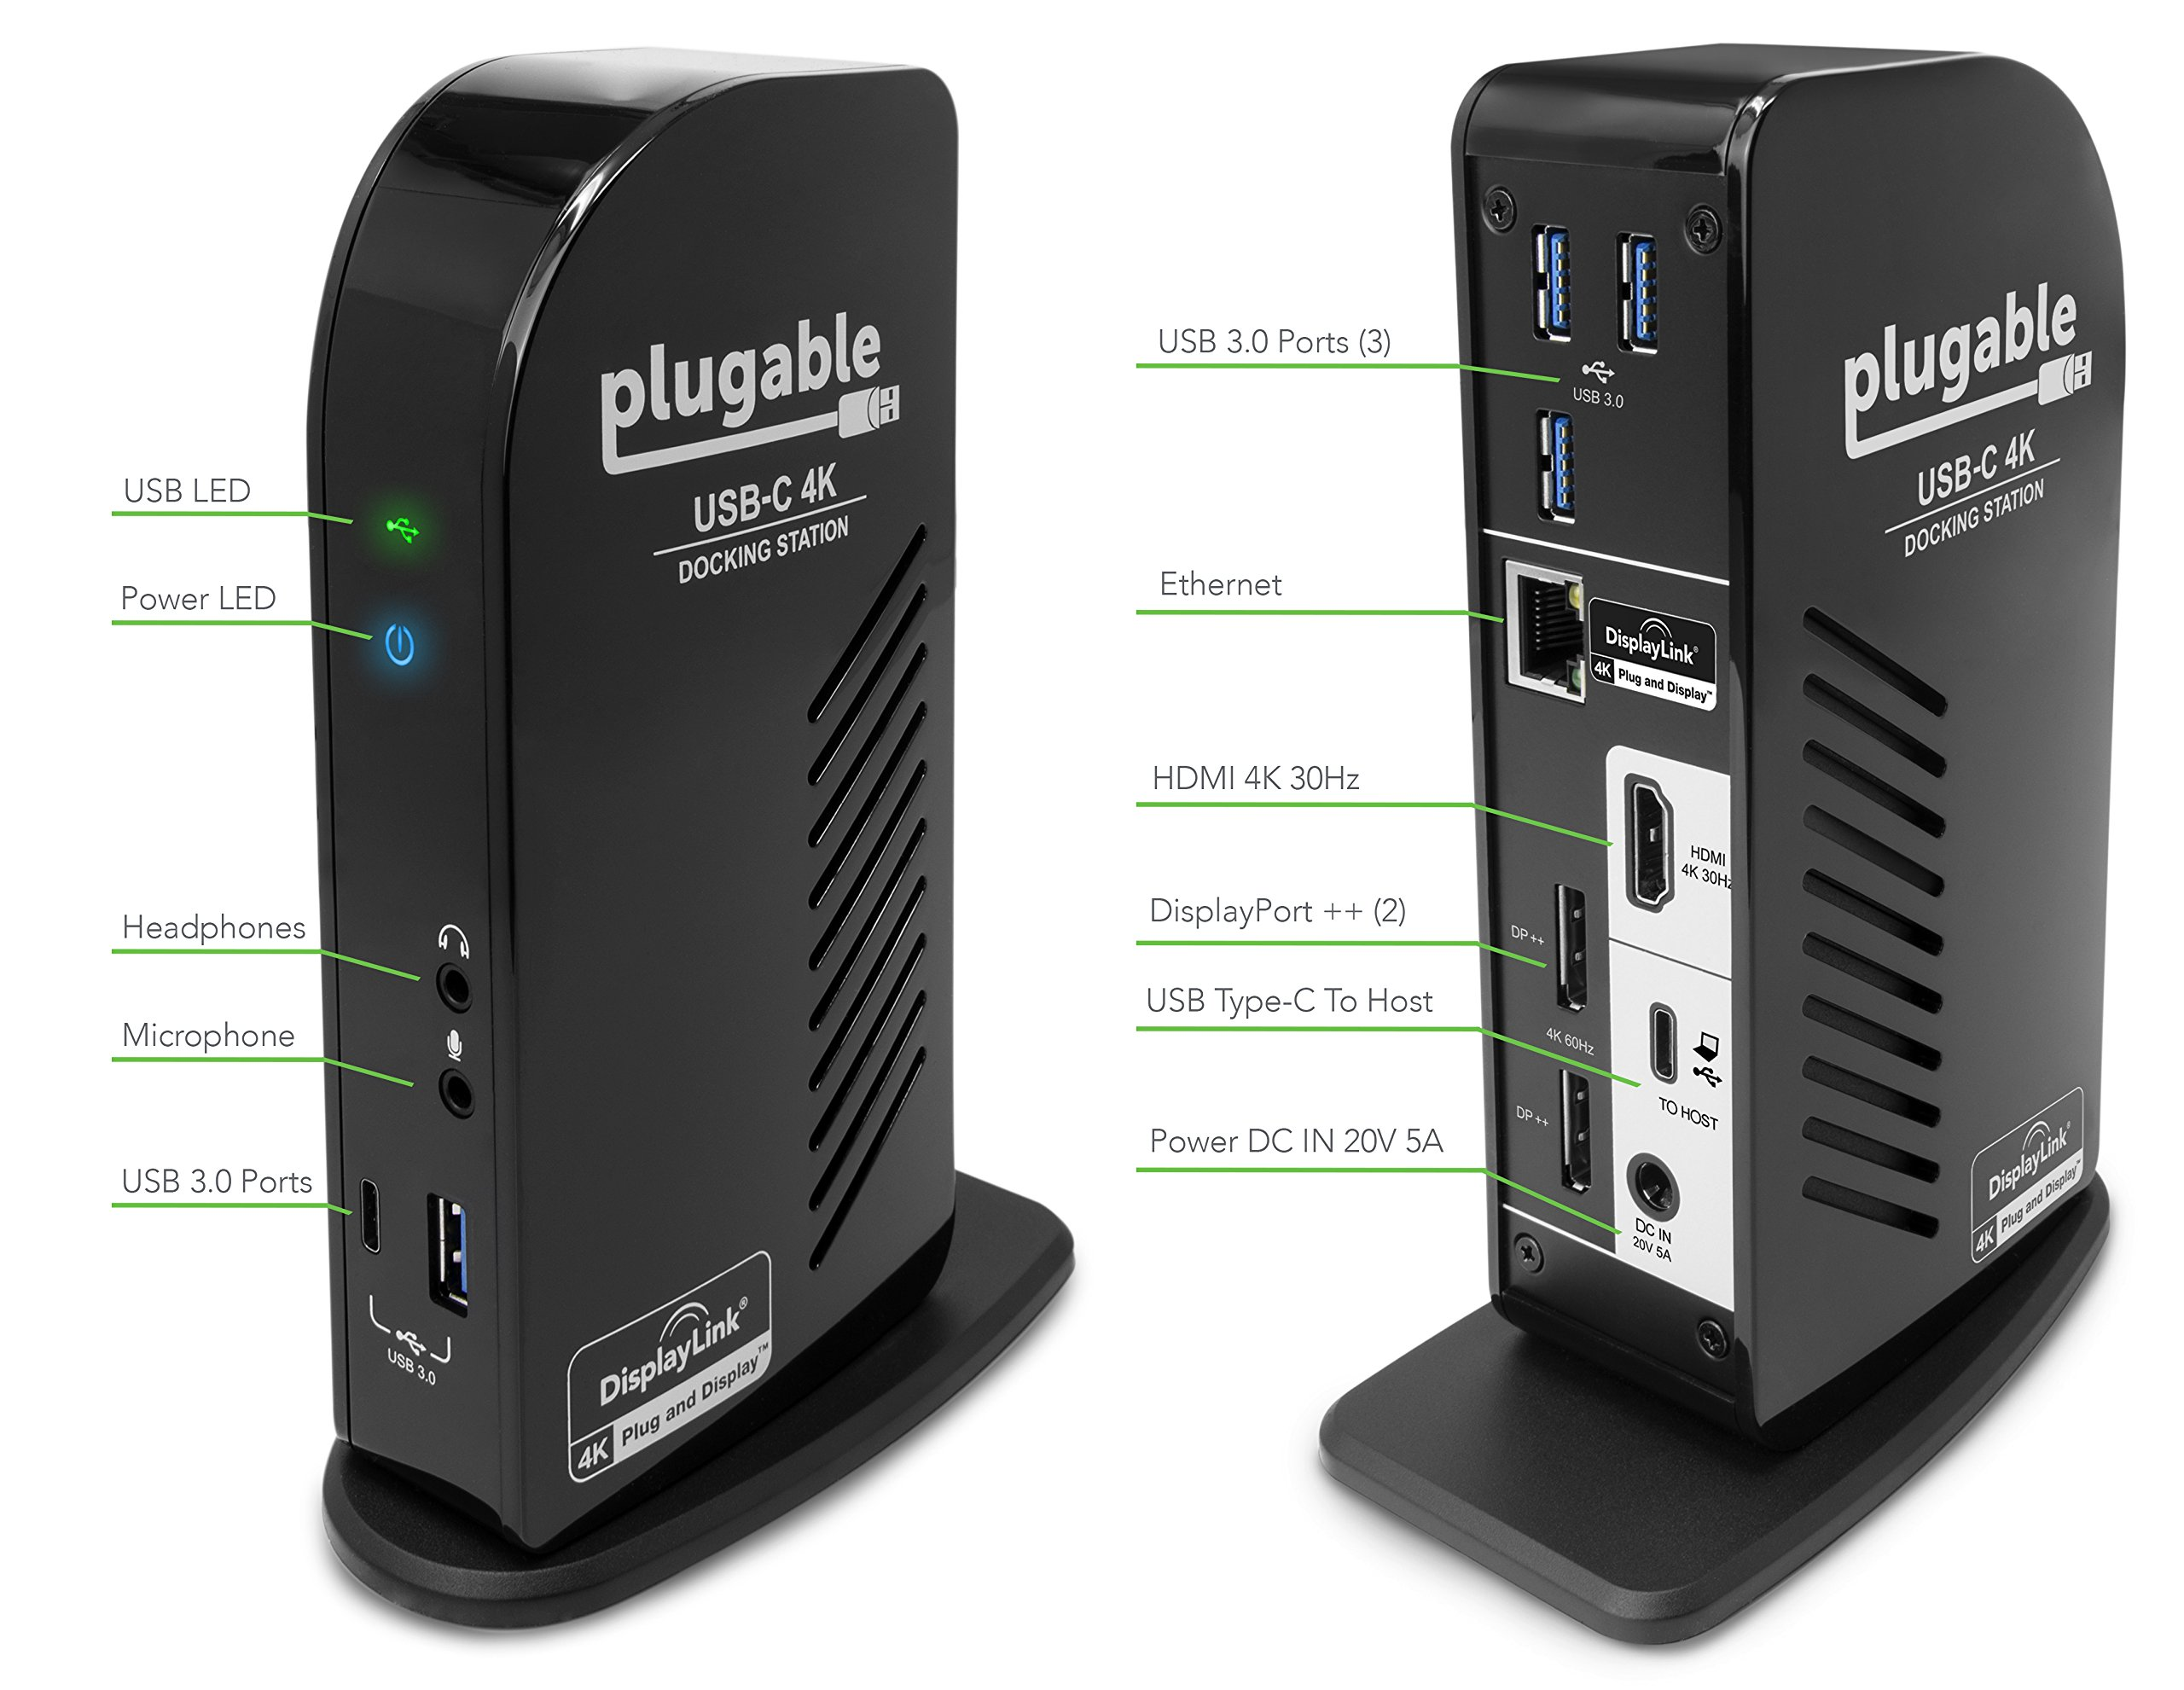 Plugable USB-C 4K Triple Display Docking Station with Charging Support for Specific Mac & Windows USB Type-C / Thunderbolt 3 Sysems (1x HDMI & 2x DisplayPort++ Outputs, 60W USB PD) by Plugable (Image #3)